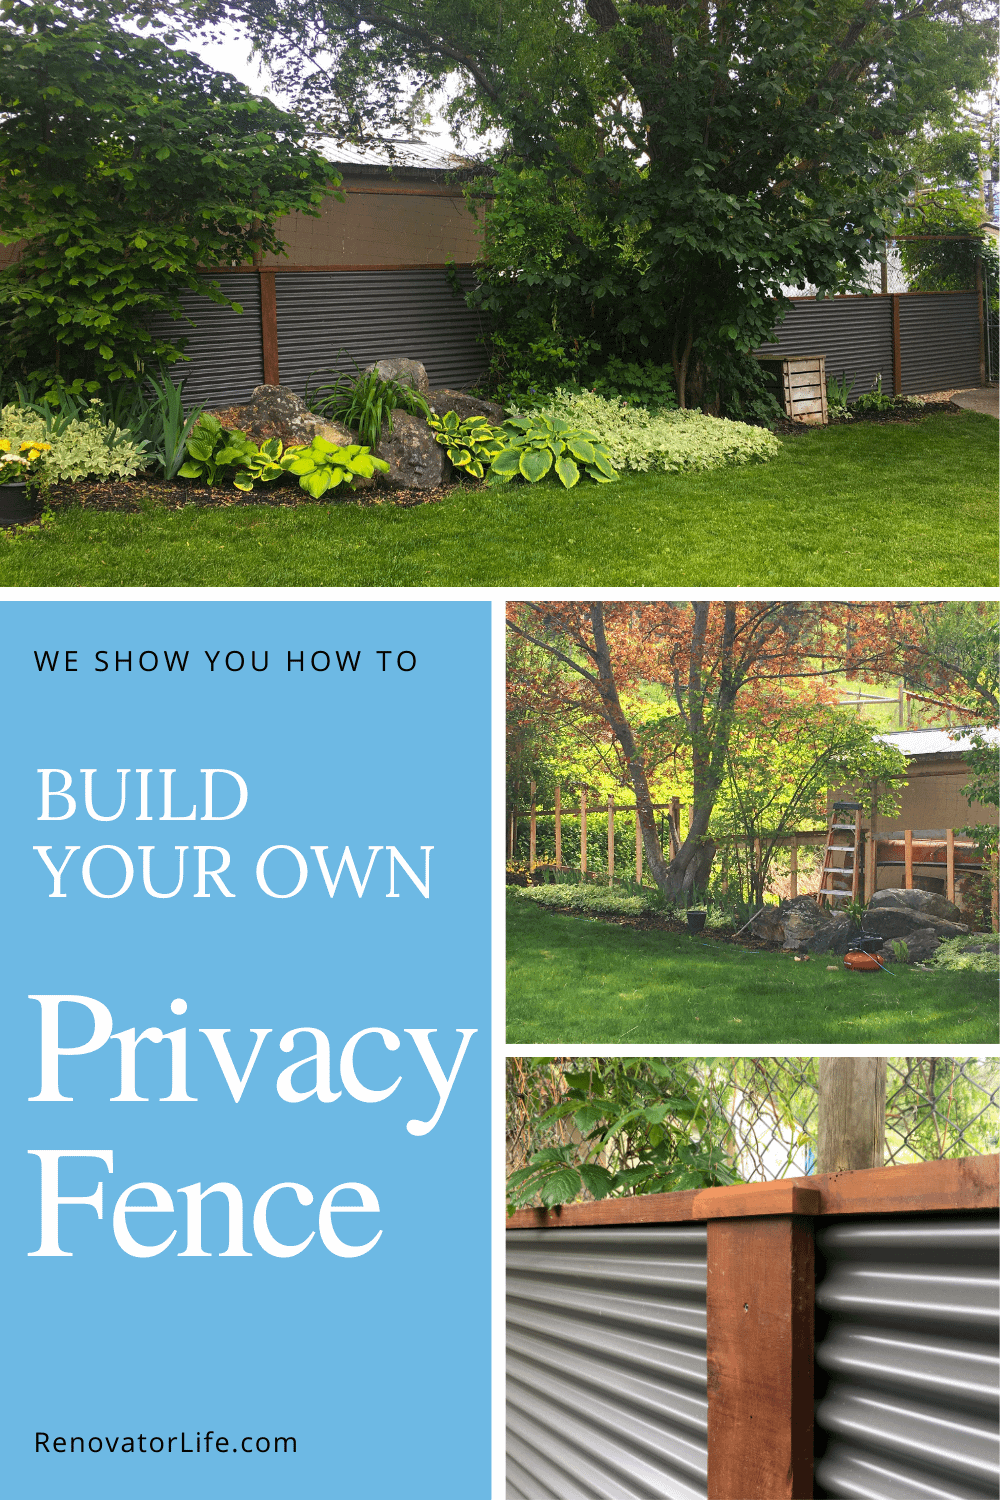 Build Your Own Privacy Fence